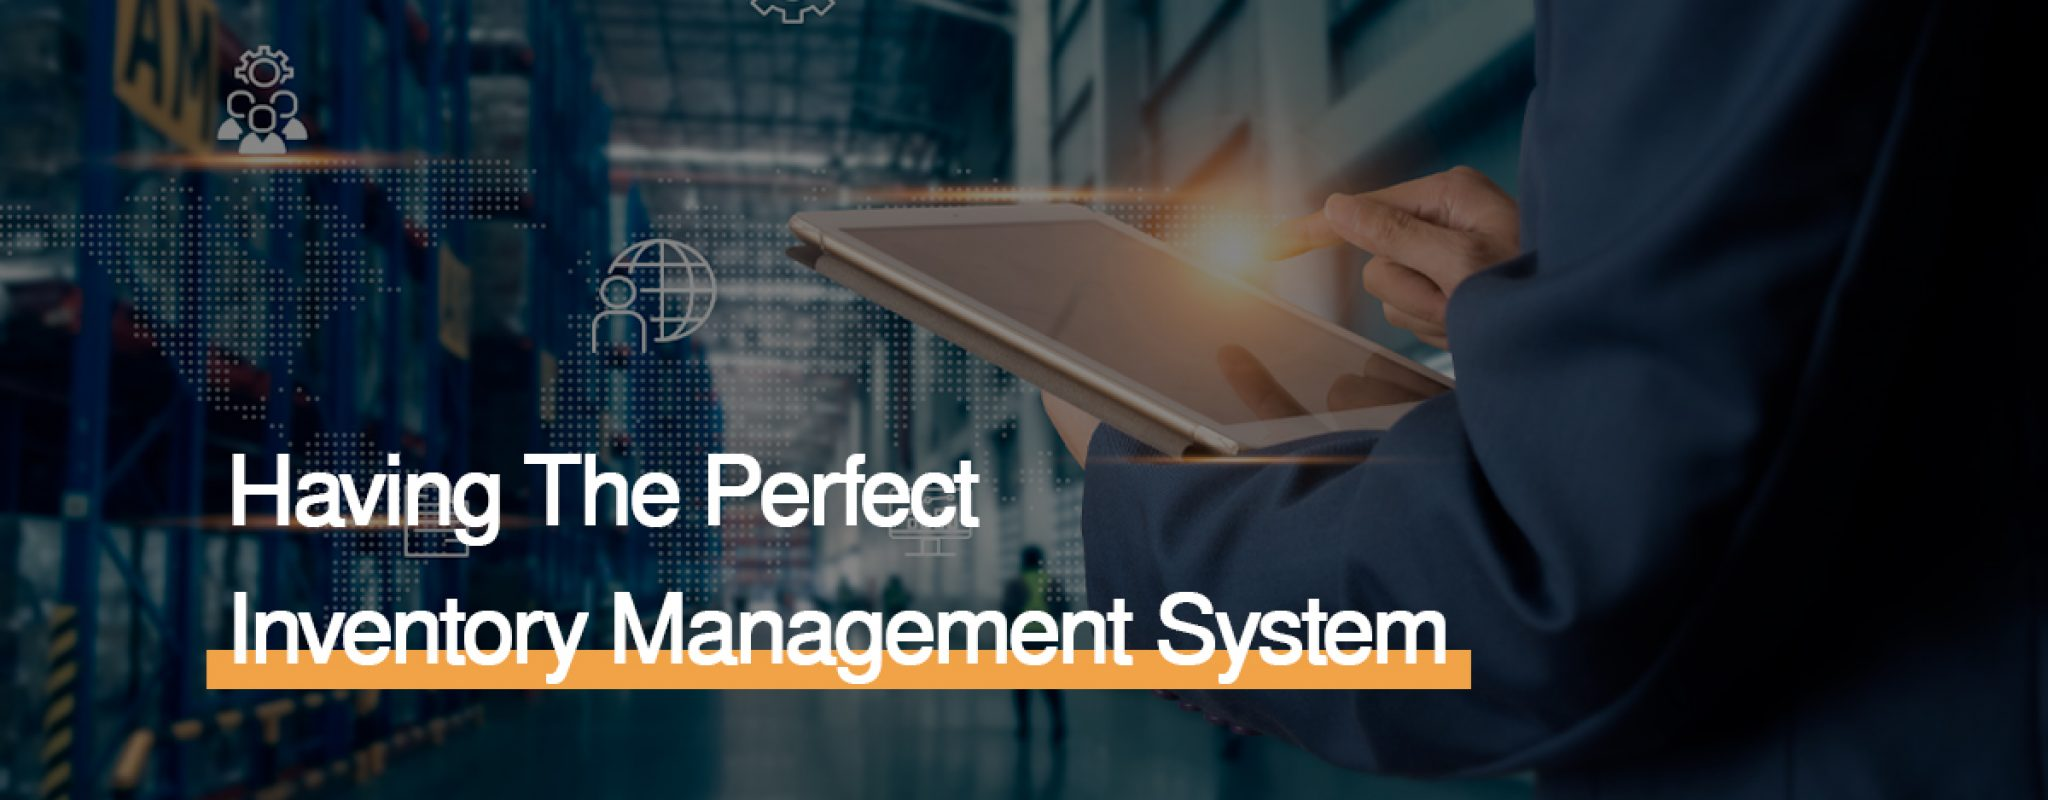 Perfect Inventory Management System